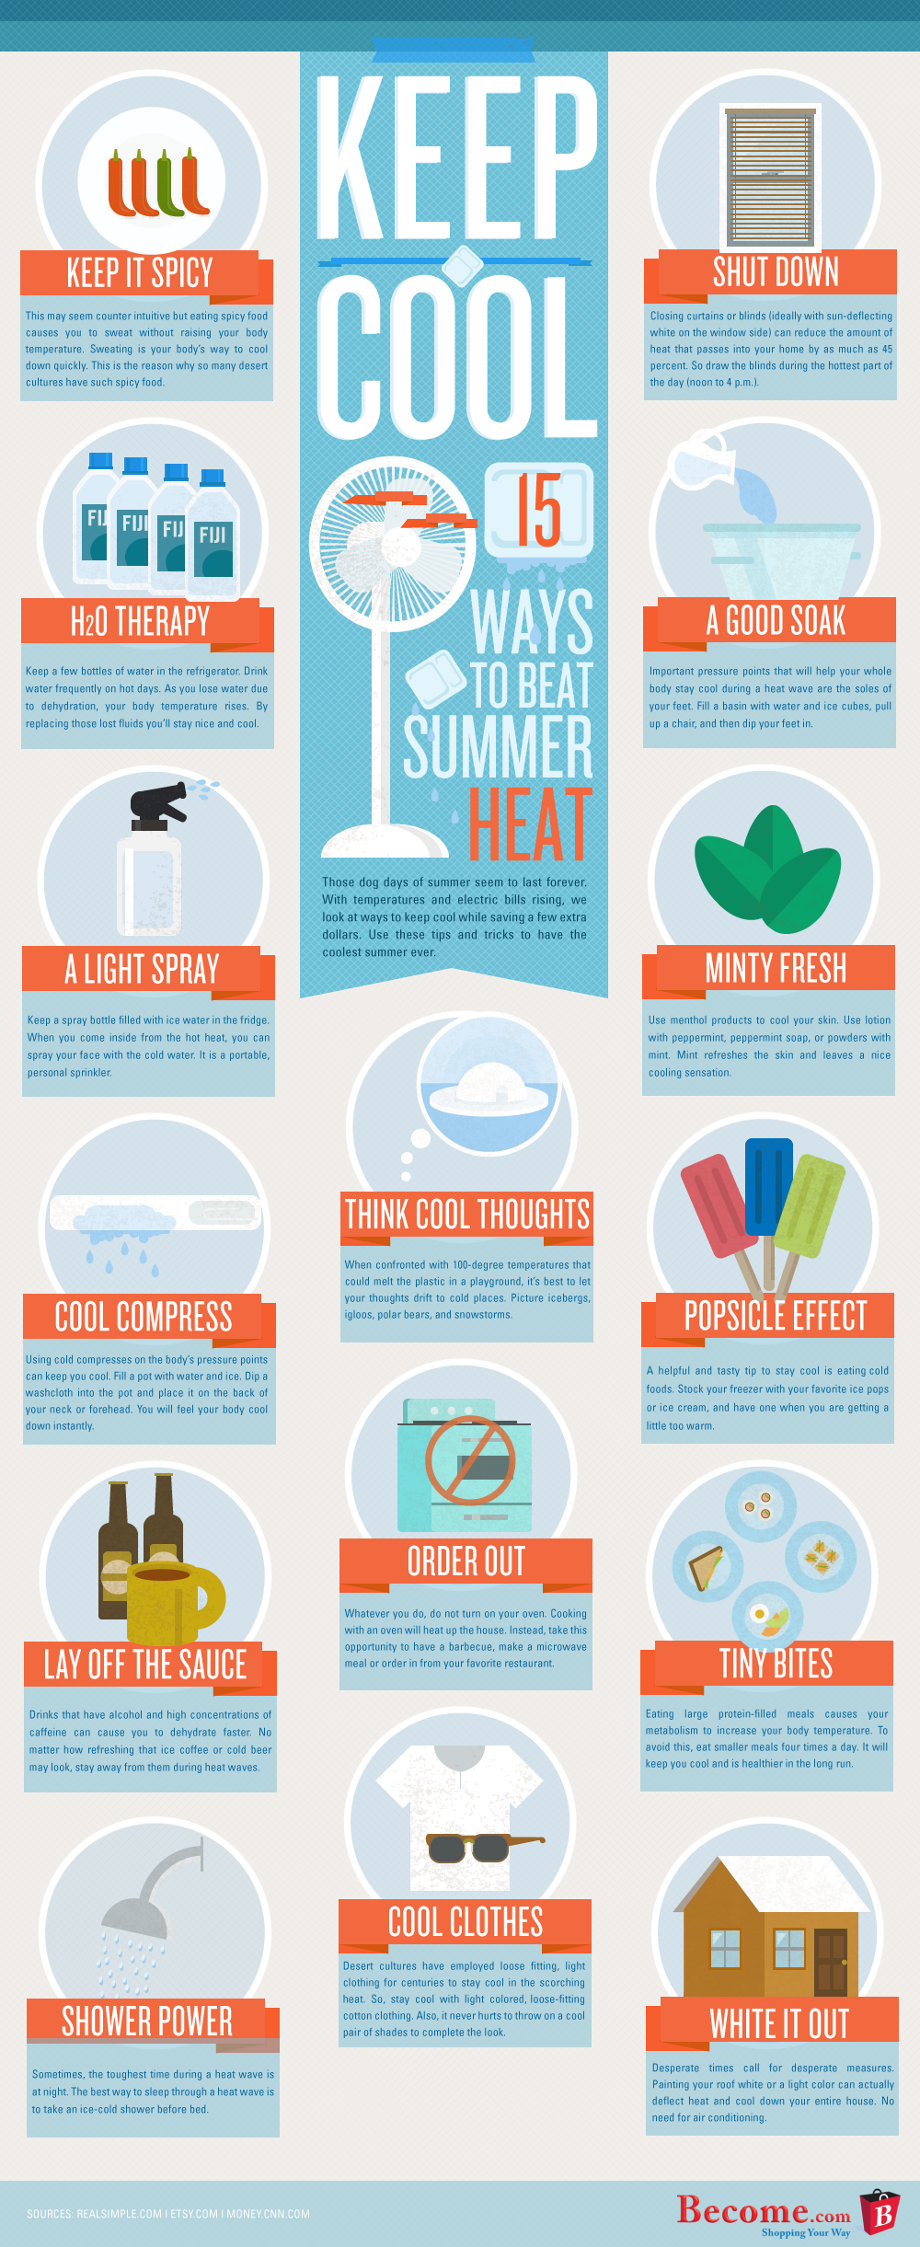 ways to beat the heat